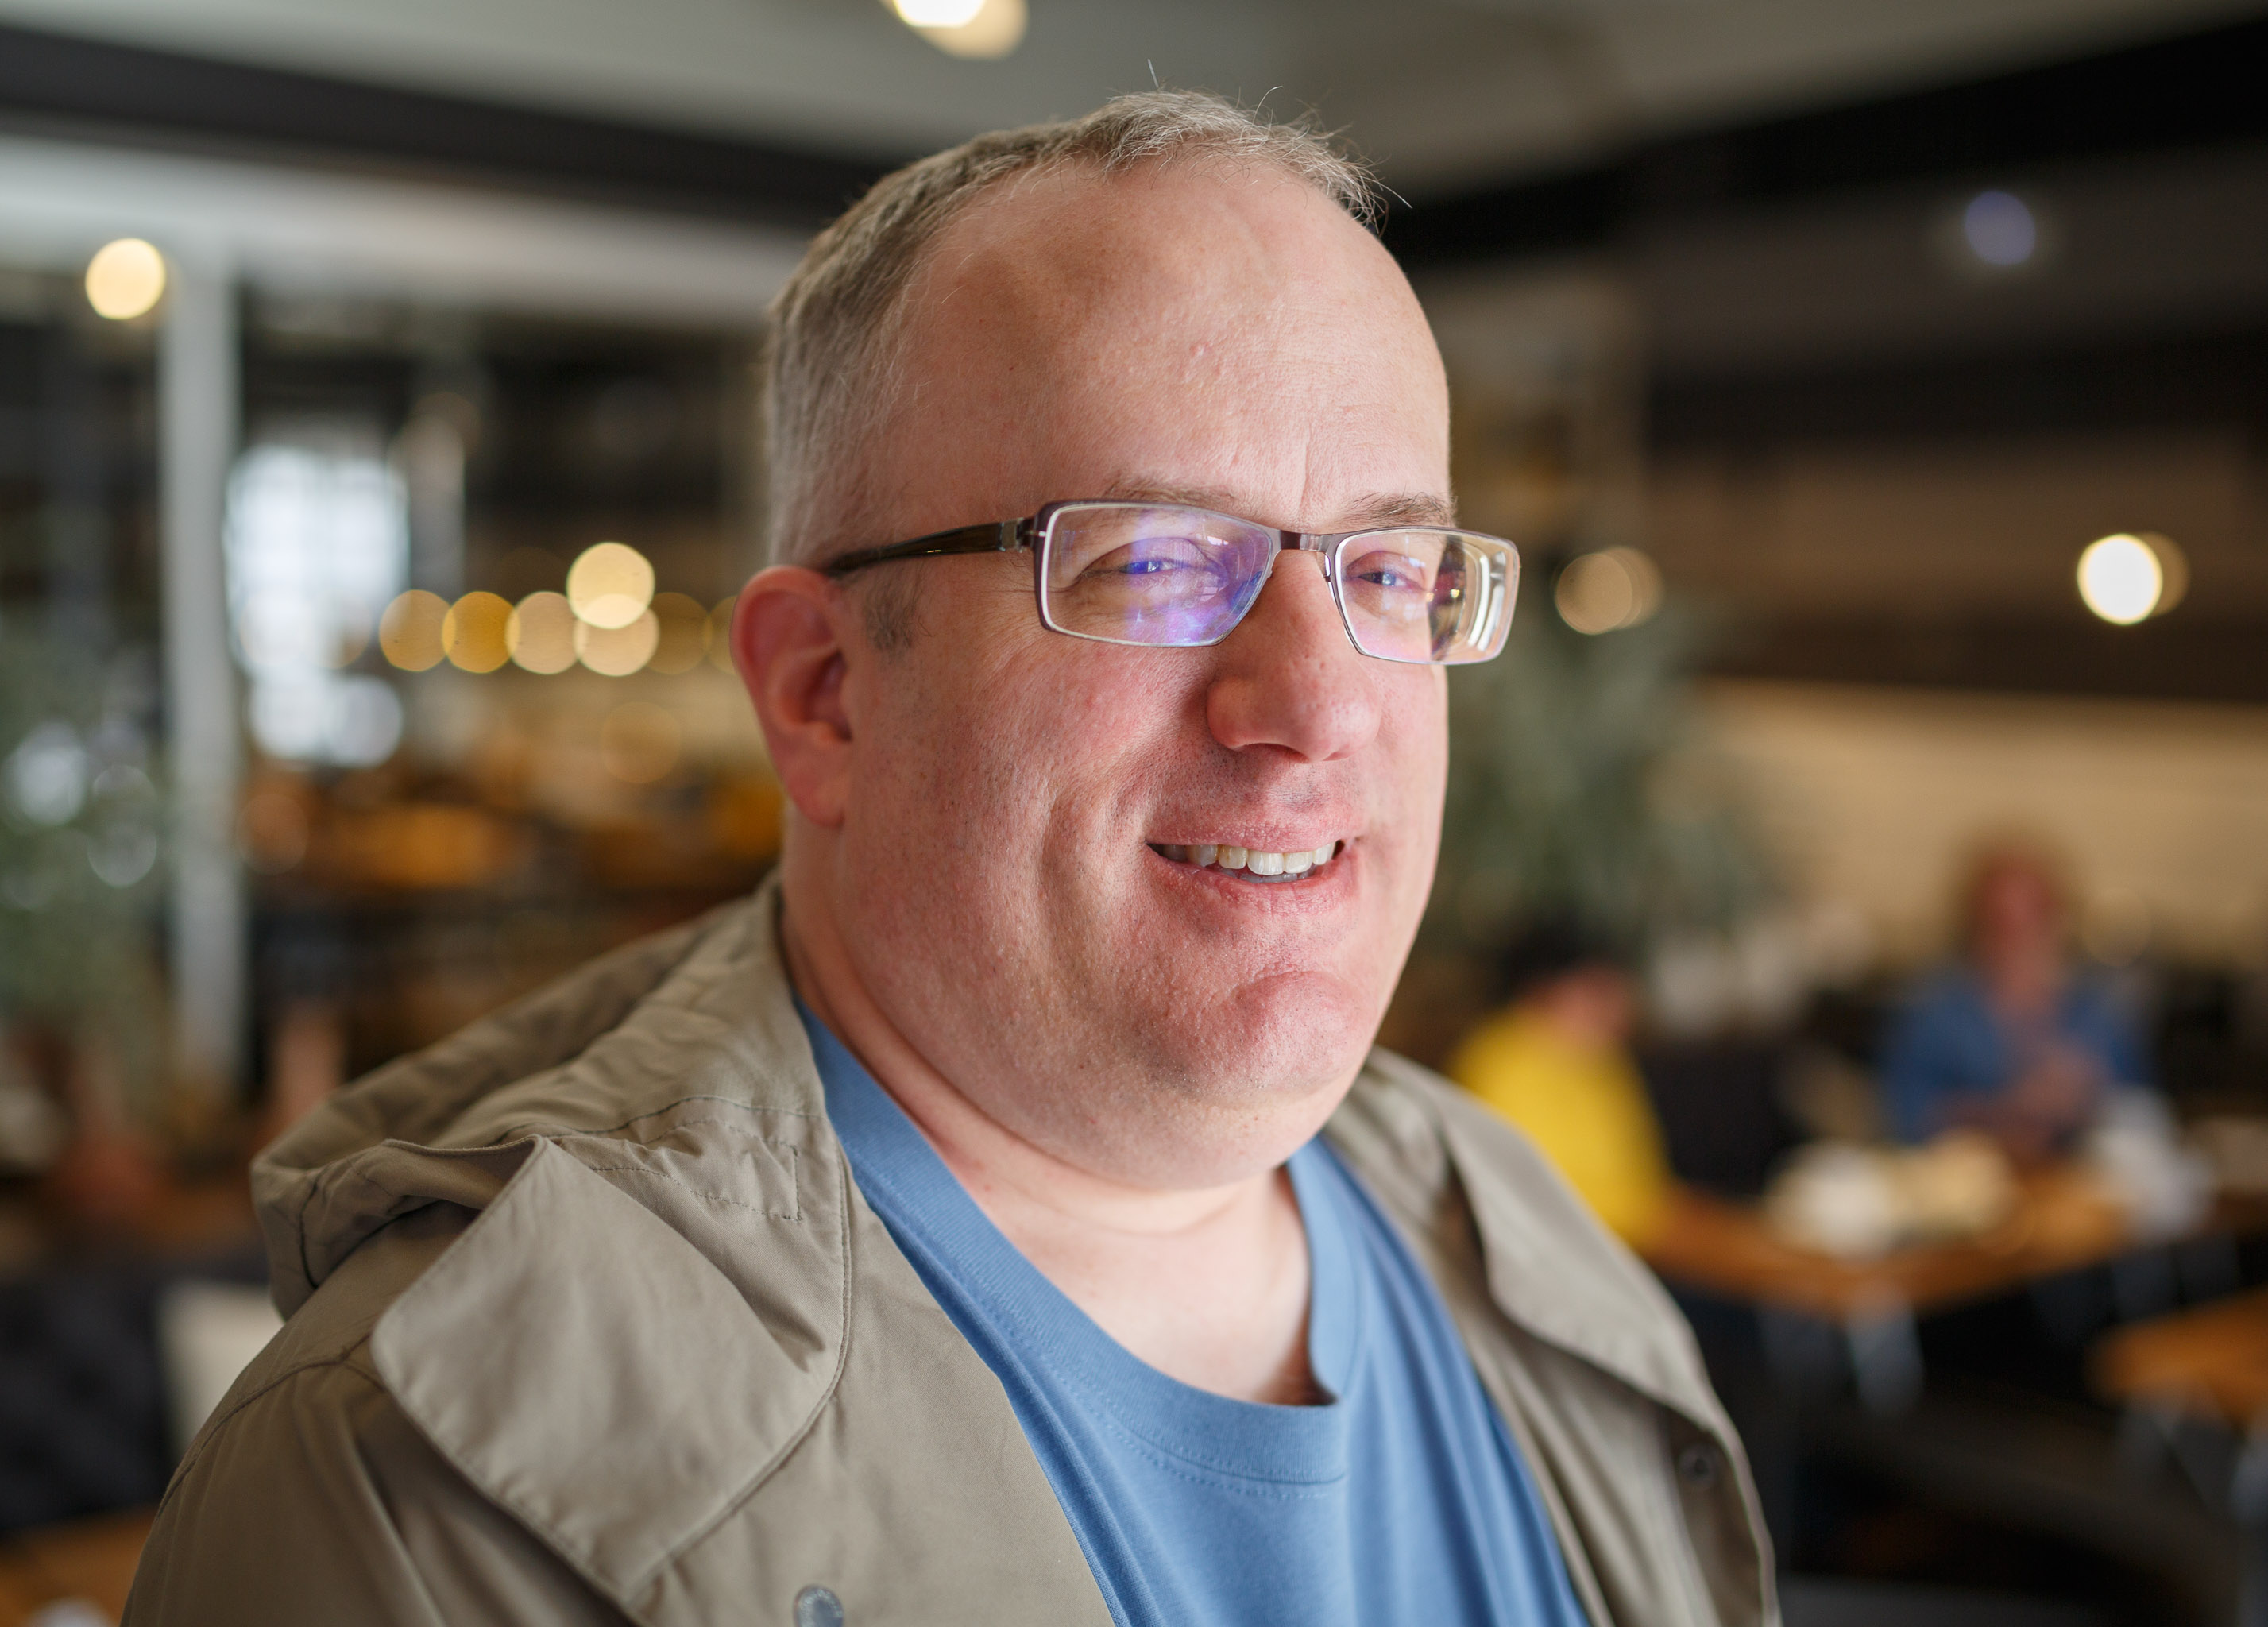 Brave Software CEO and JavaScript inventor Brendan Eich